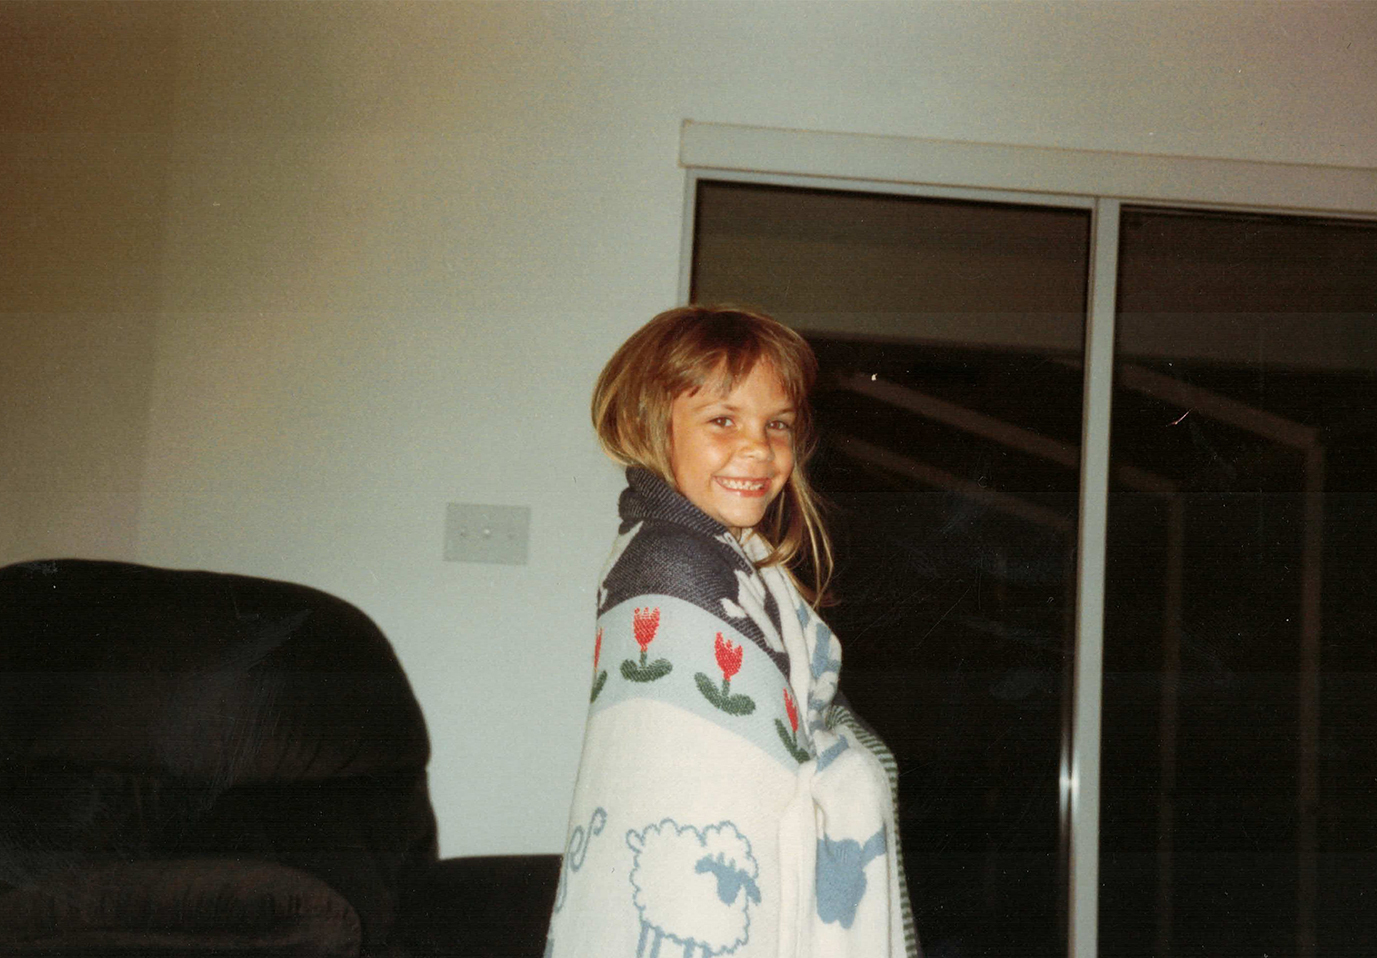 Me, messy-haired and snaggle-toothed…like any respectable kid should be.